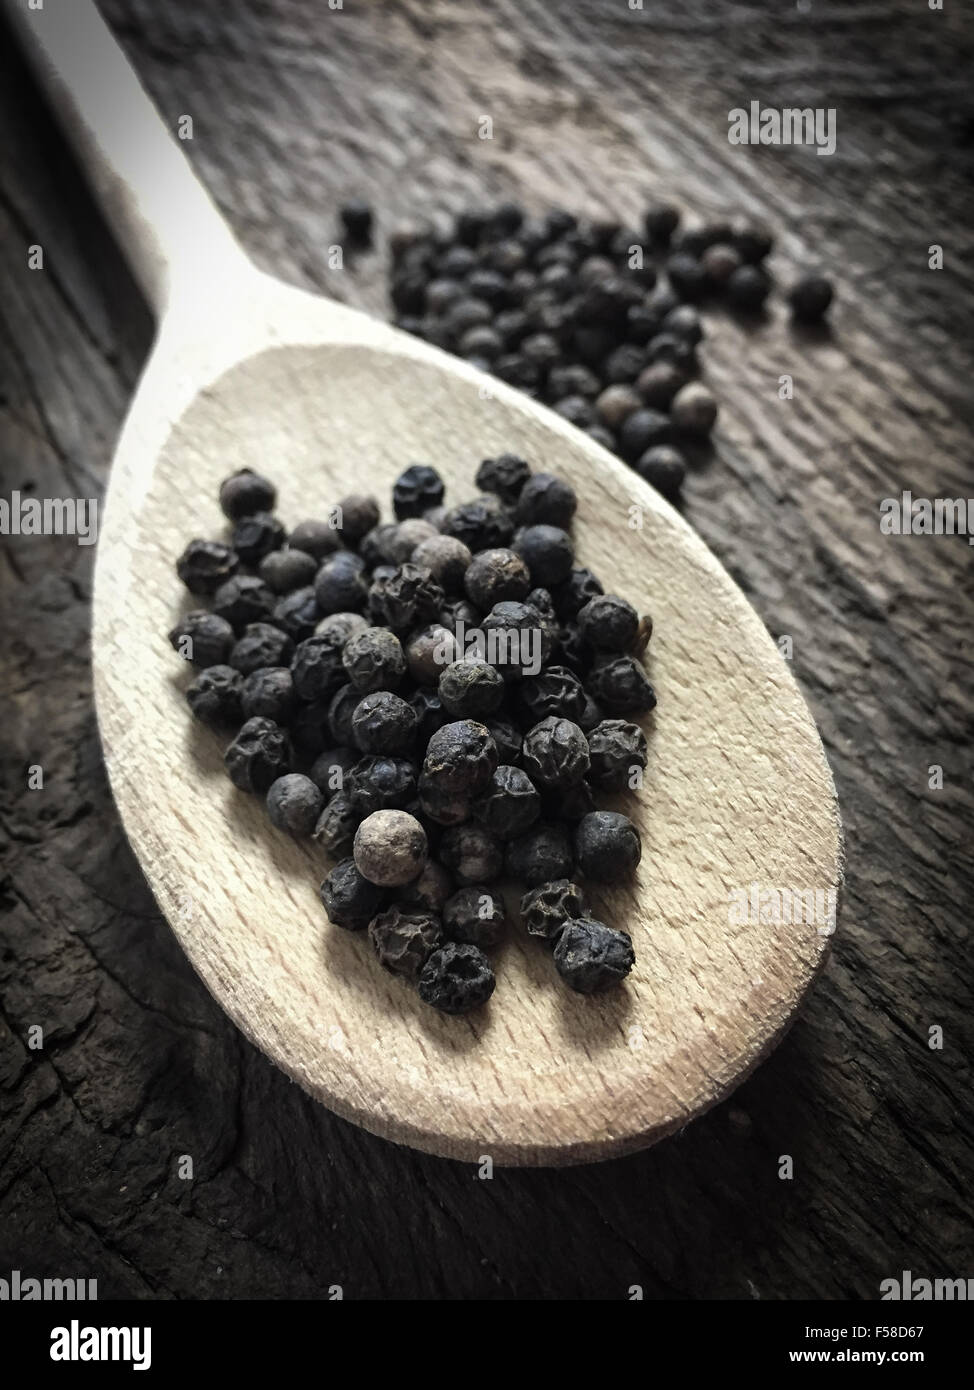 Fine served black peppercorns on wooden background - Stock Image